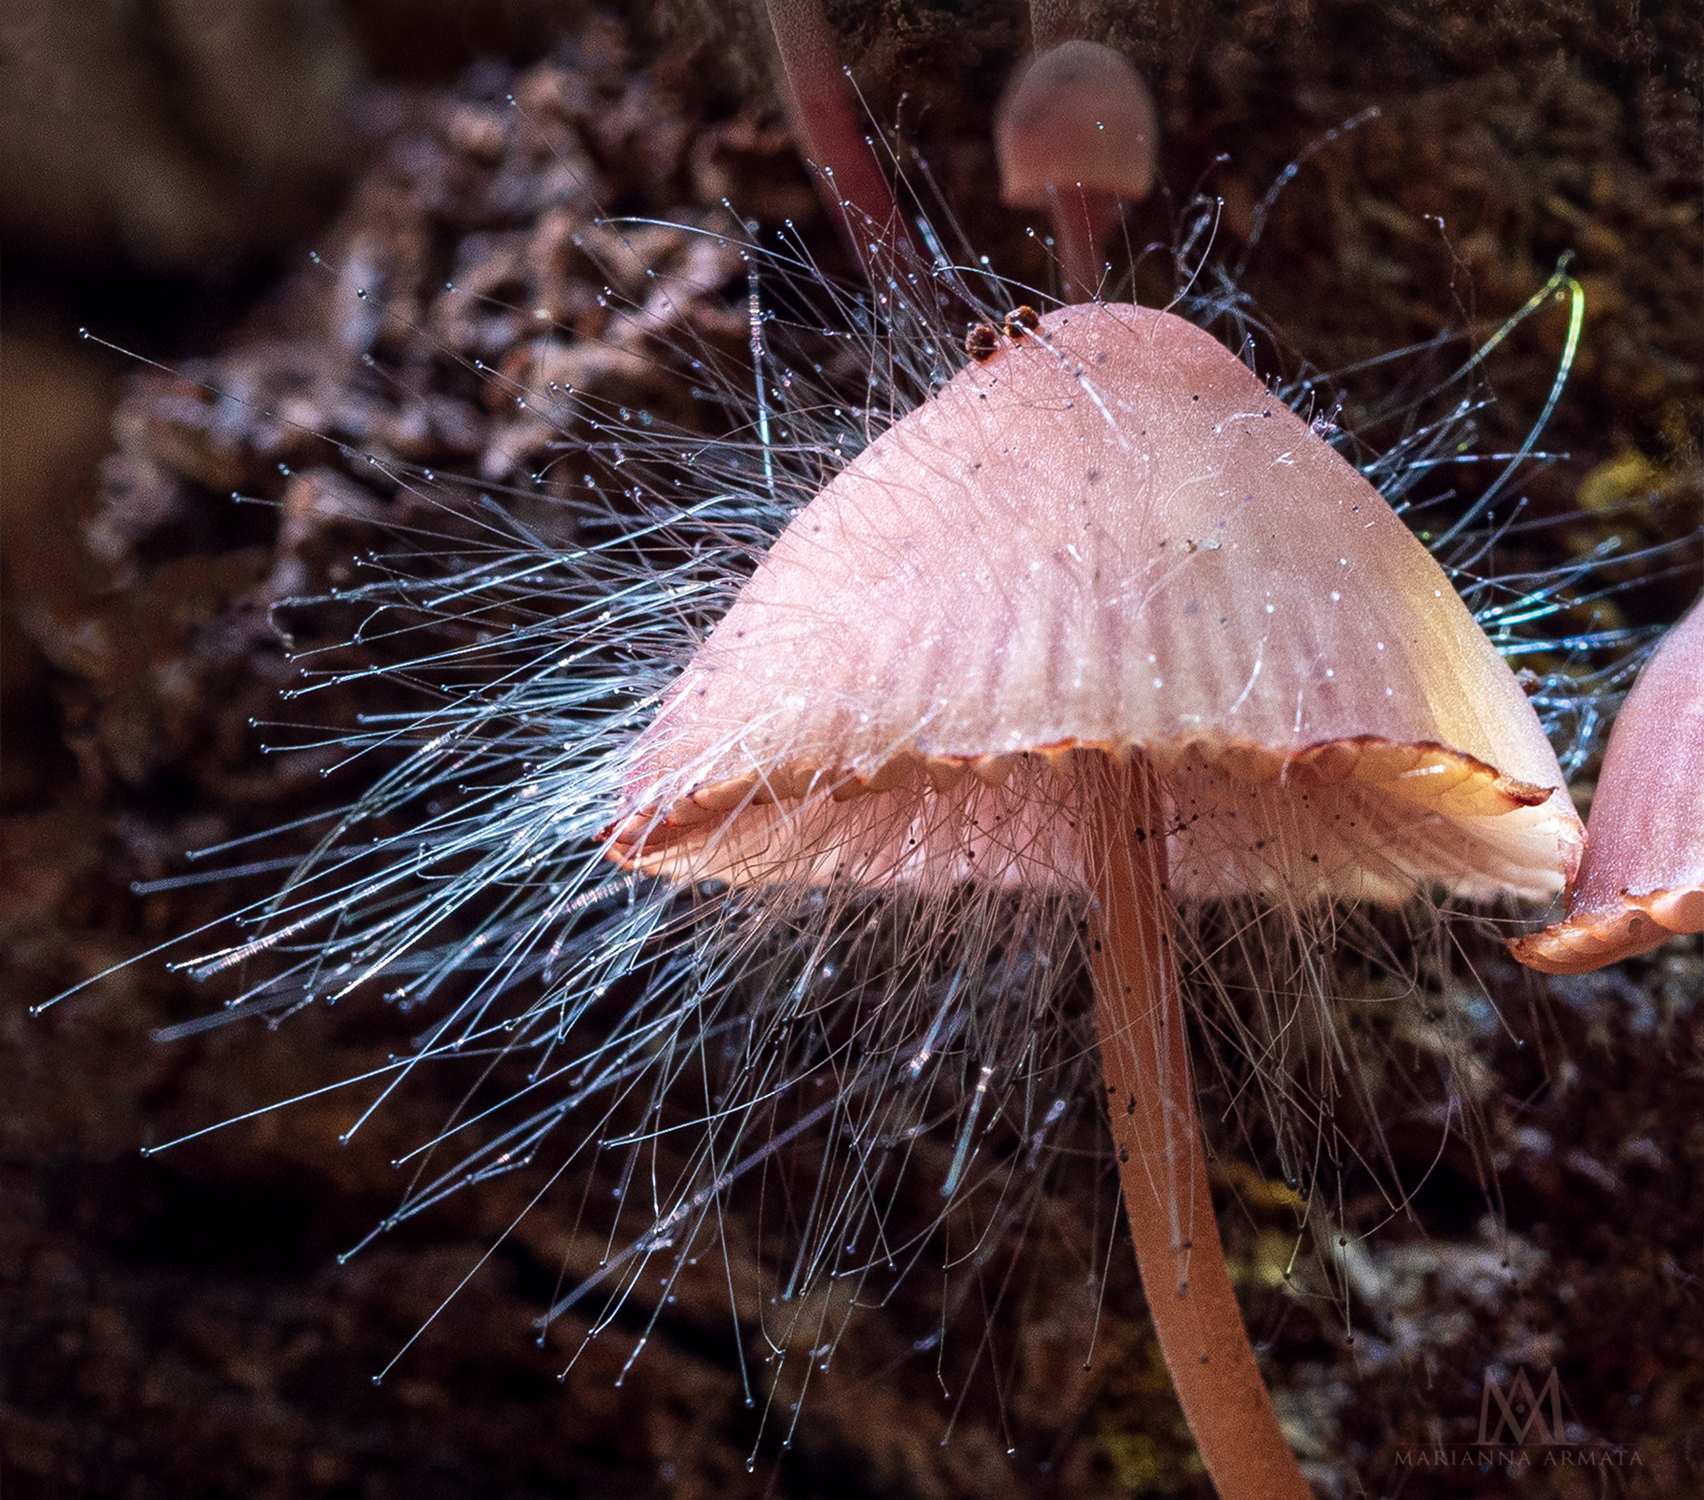 Bleeding mycena + fungus